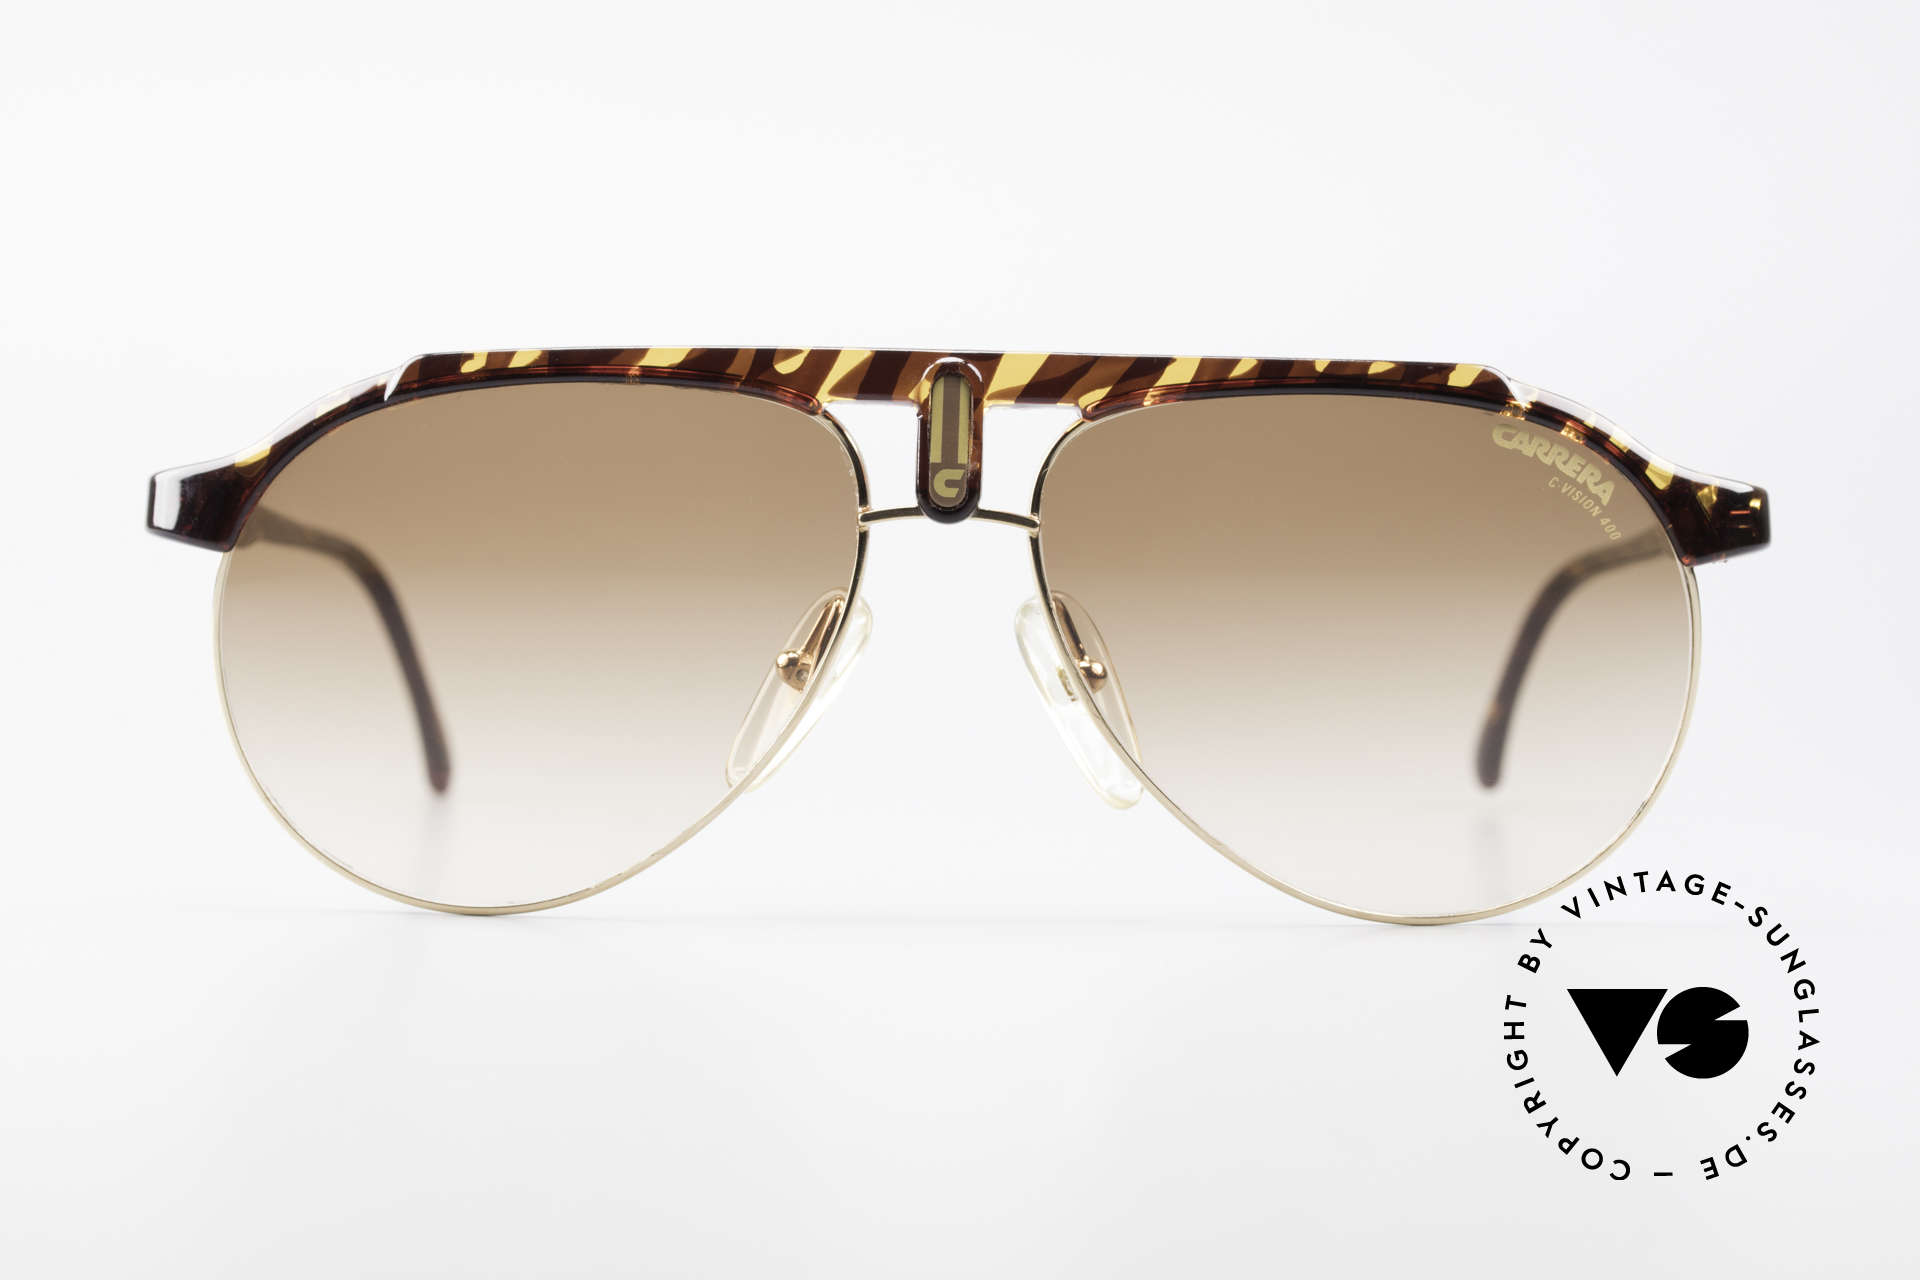 Carrera 5478 Rare Vintage Shades Aviator, fresh combination of colors, shapes, materials, Made for Men and Women